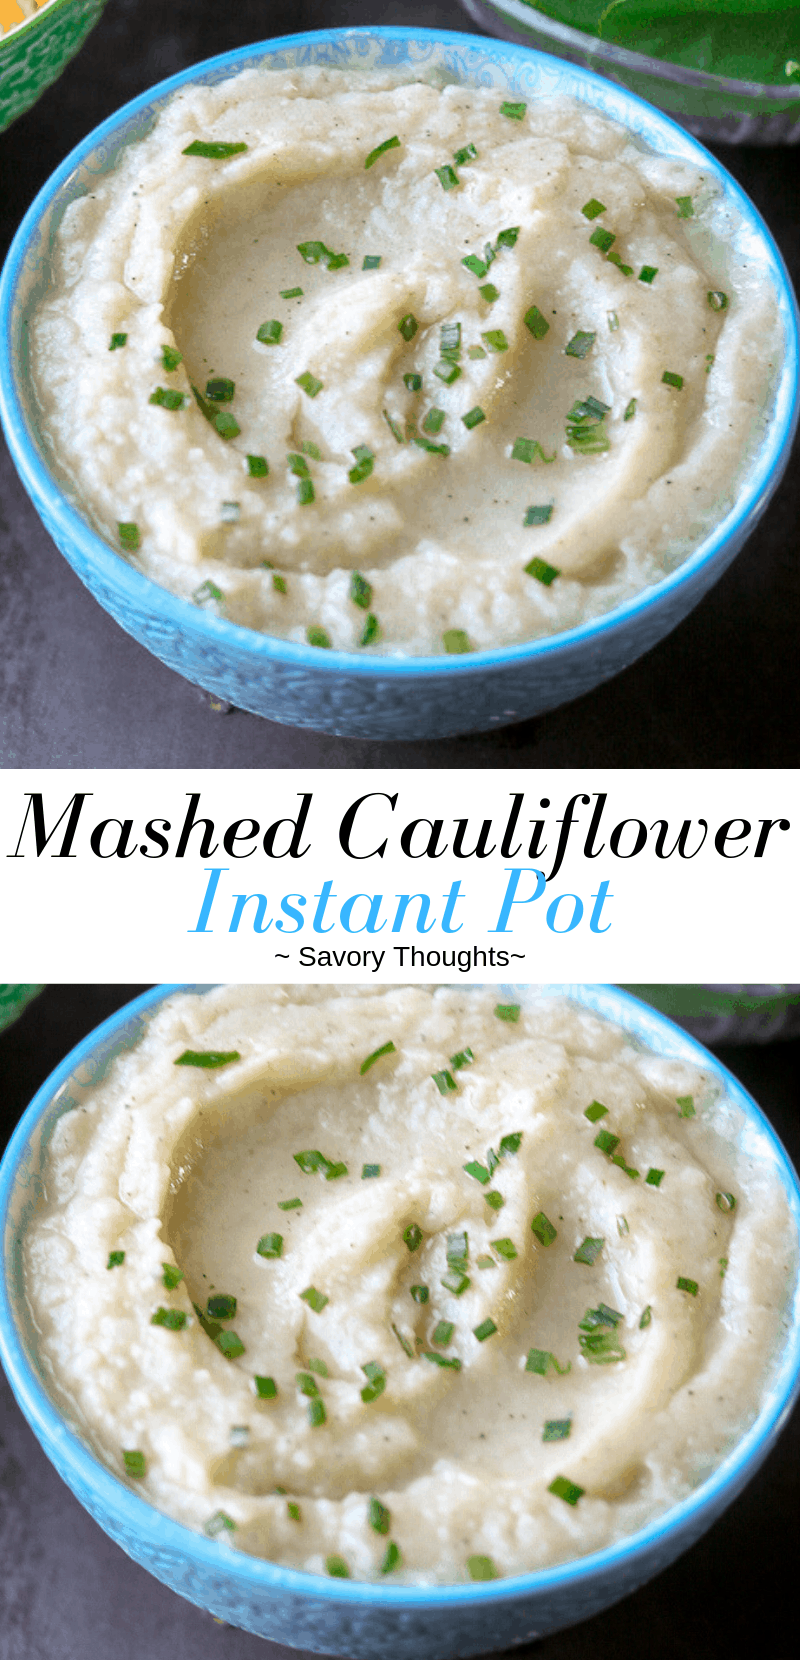 Mashed Cauliflower Instant Pot Pinterst Pin in blue bowls with black and blue writing.